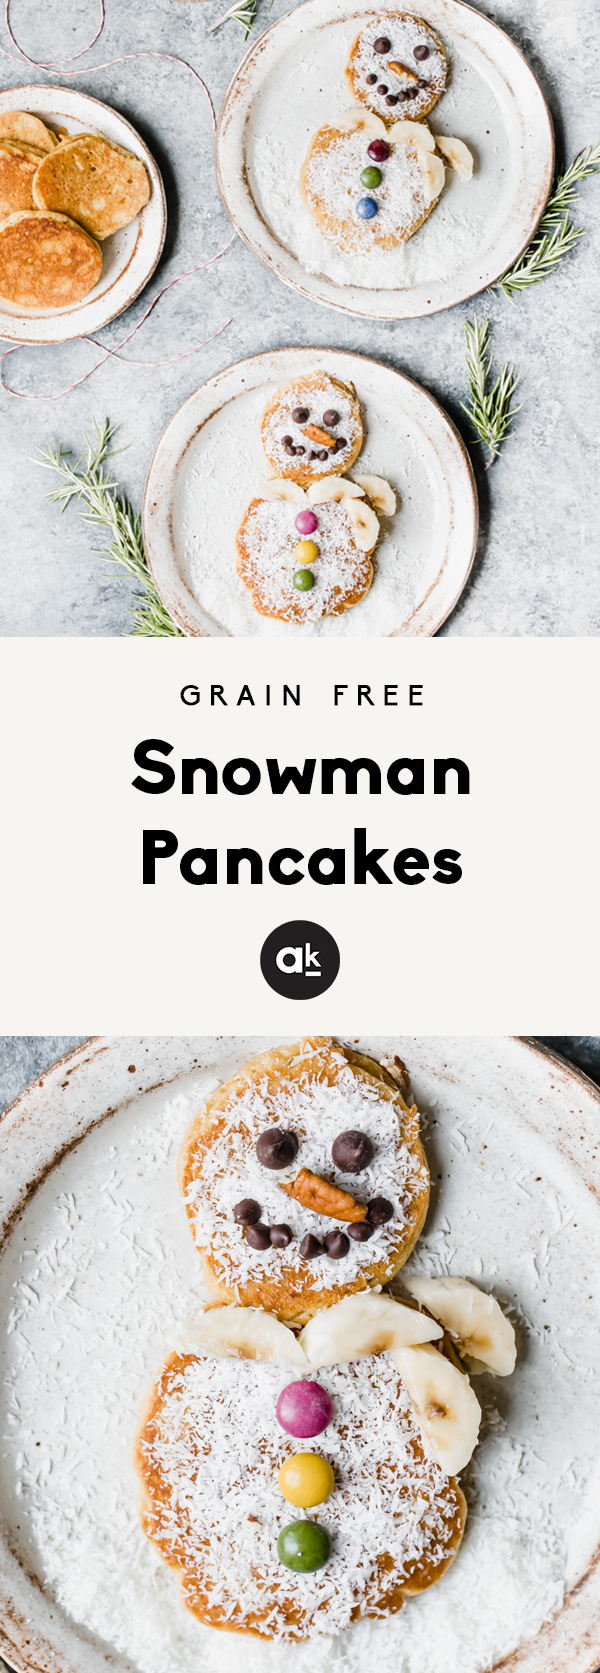 Grain free snowman pancakes made with Simple Mills Pancake & Waffles mix. A cute and festive breakfast during the holiday season and perfect to make with kids -- this recipe is in partnership with Simple Mills.